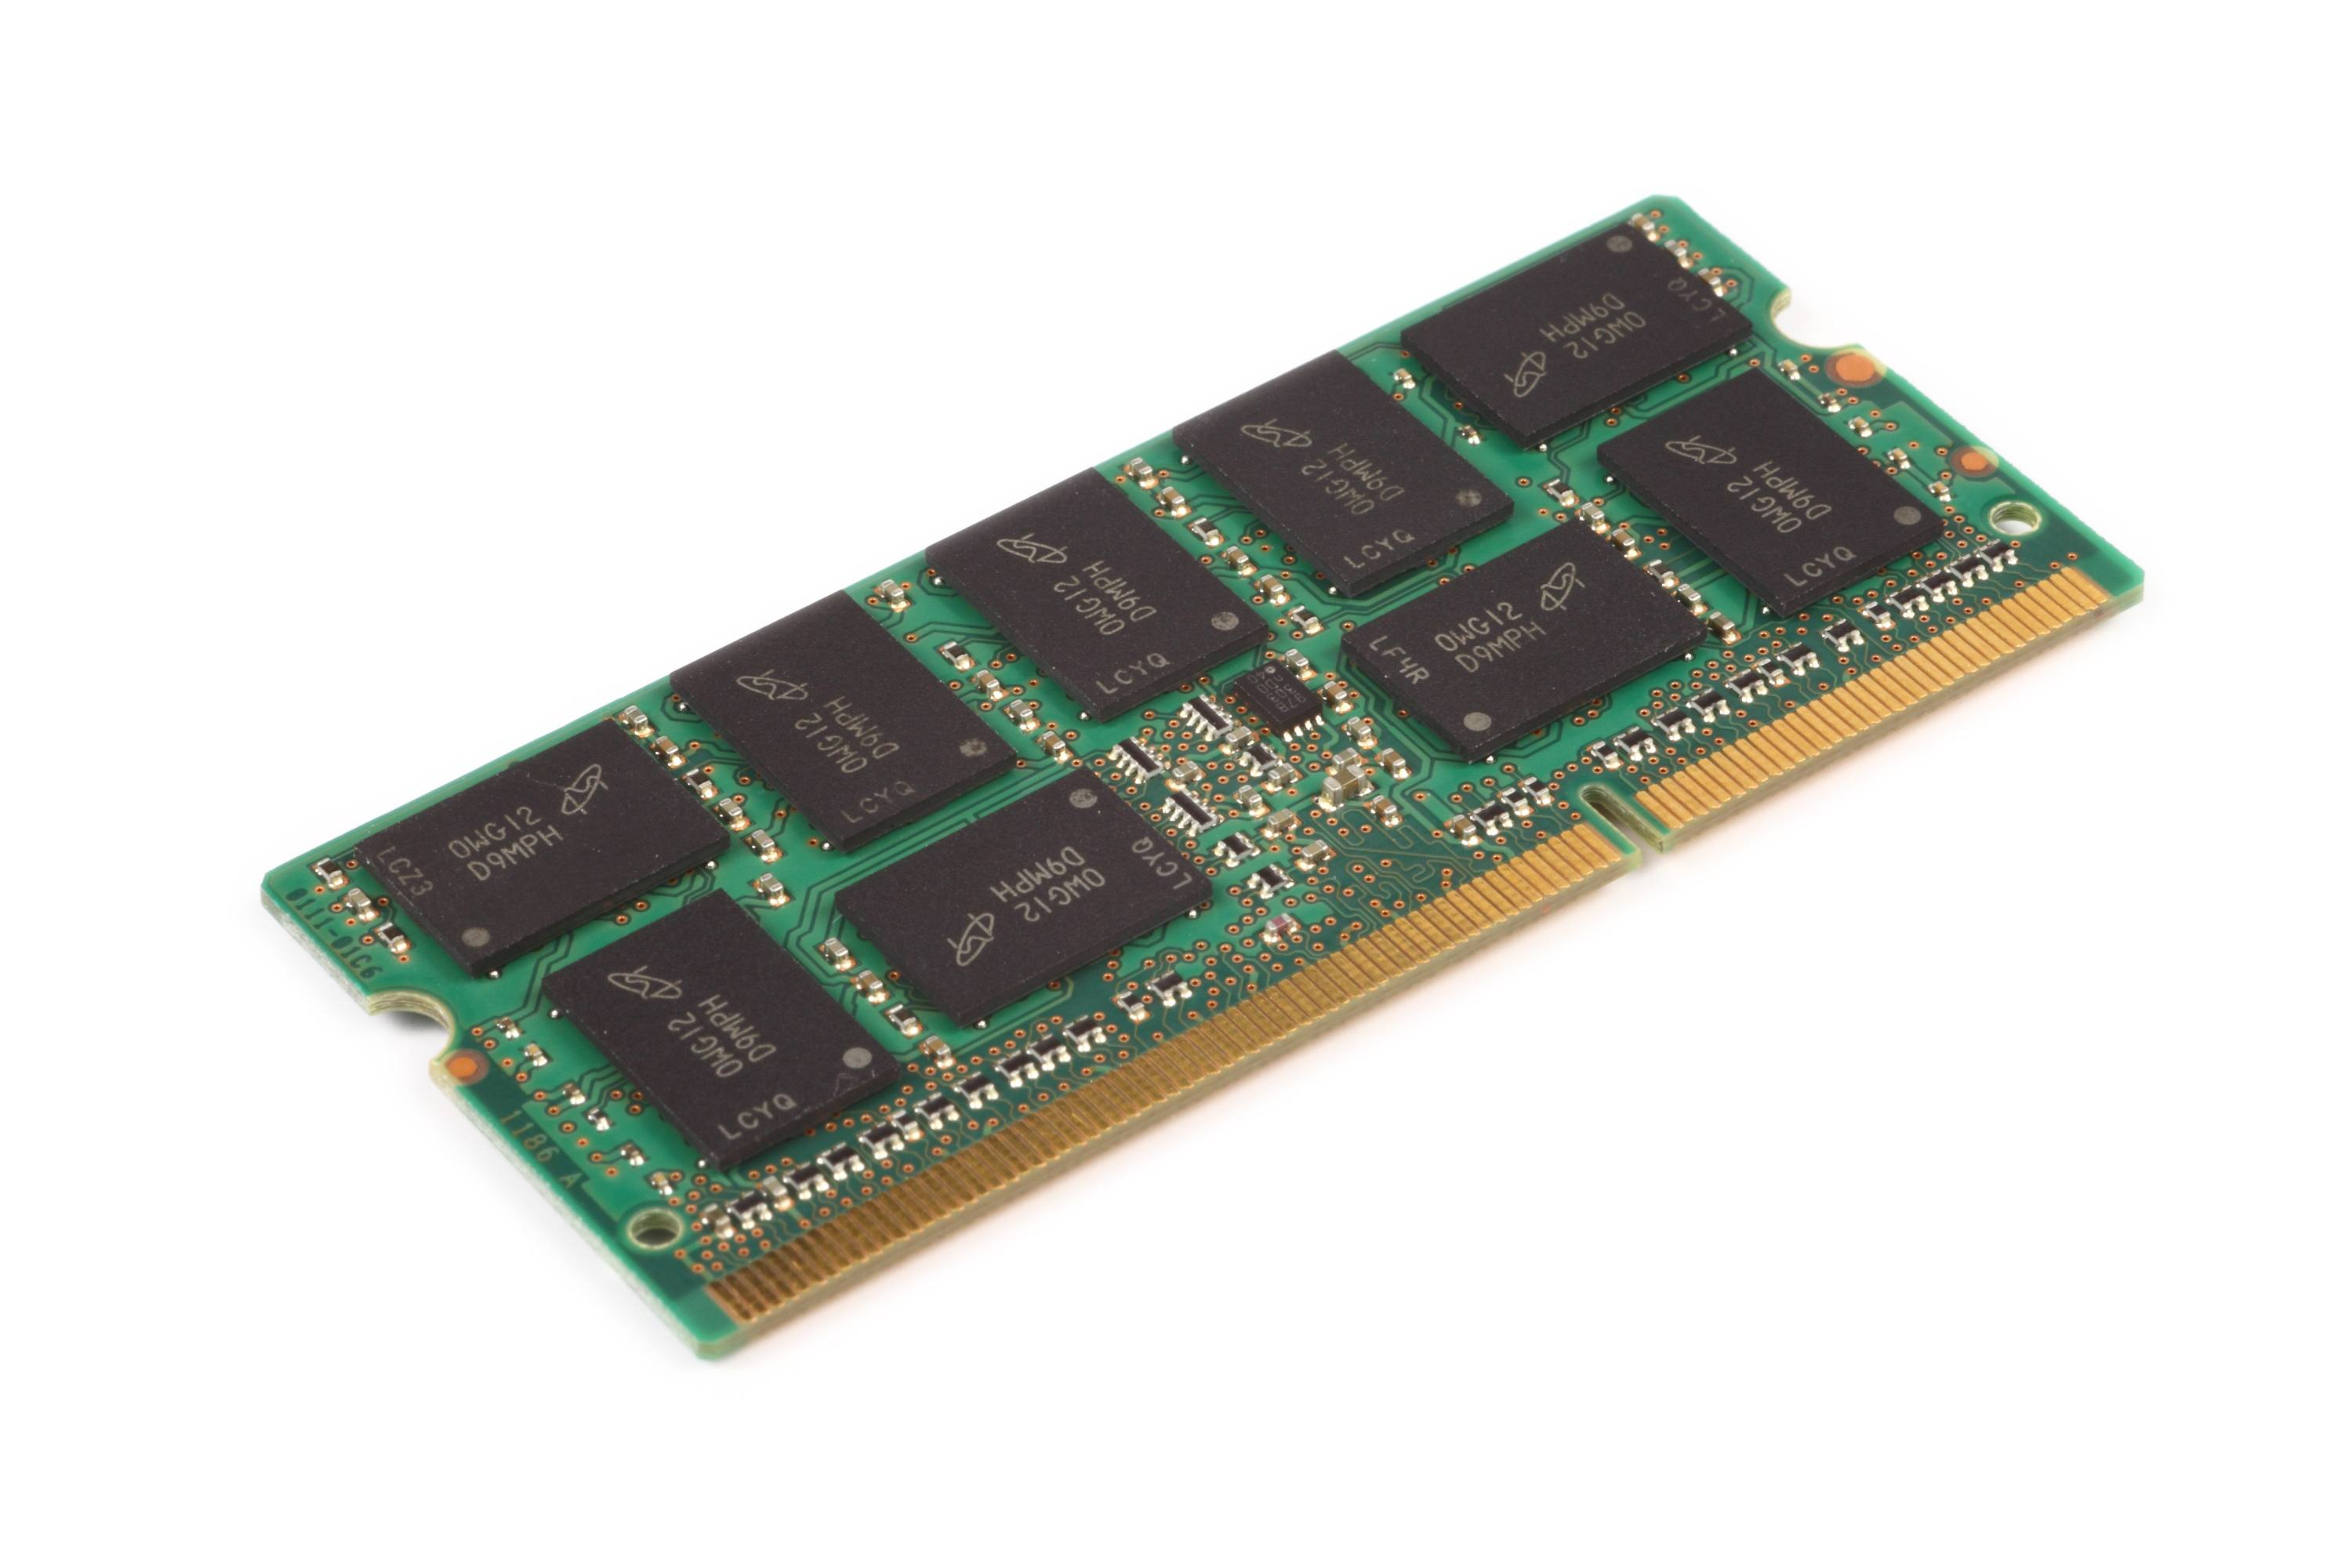 Densities of up to 16GB and data rates as high as 2400 MT/s, SODIMMs are an excellent choice for client system solutions.